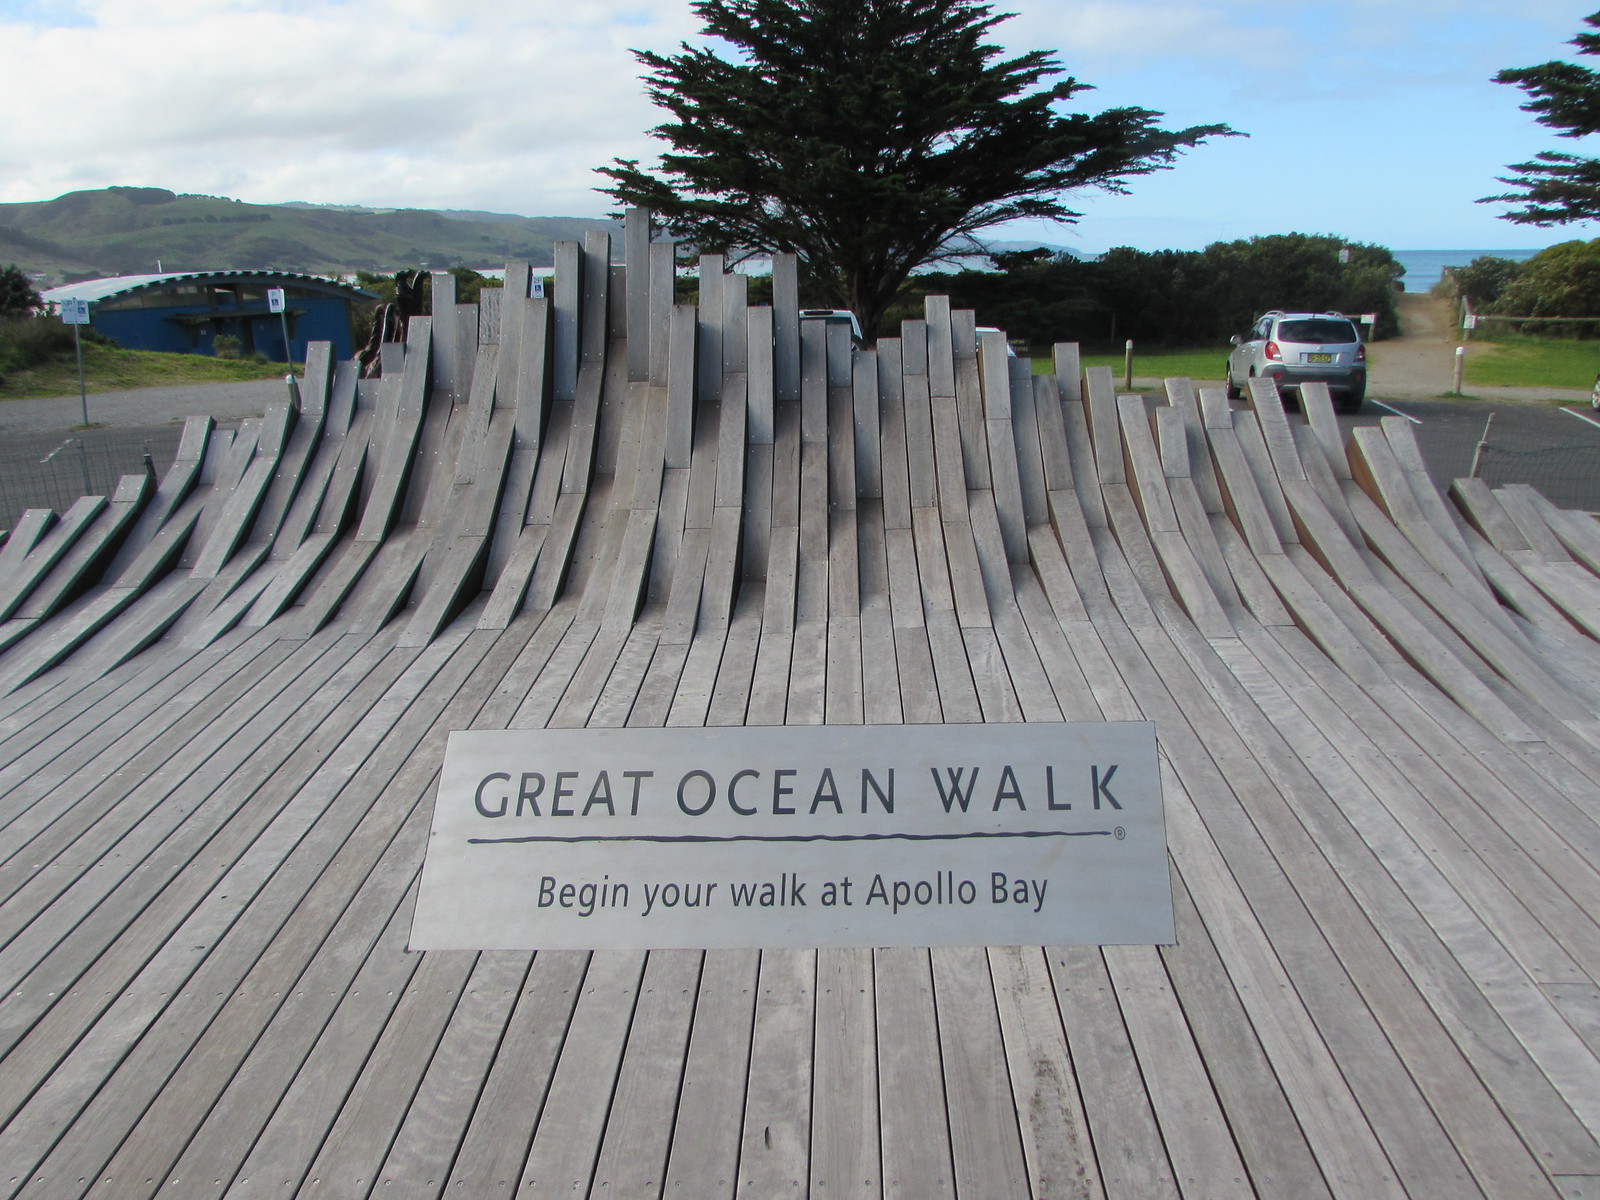 Official starting point of the Great Ocean Walk!